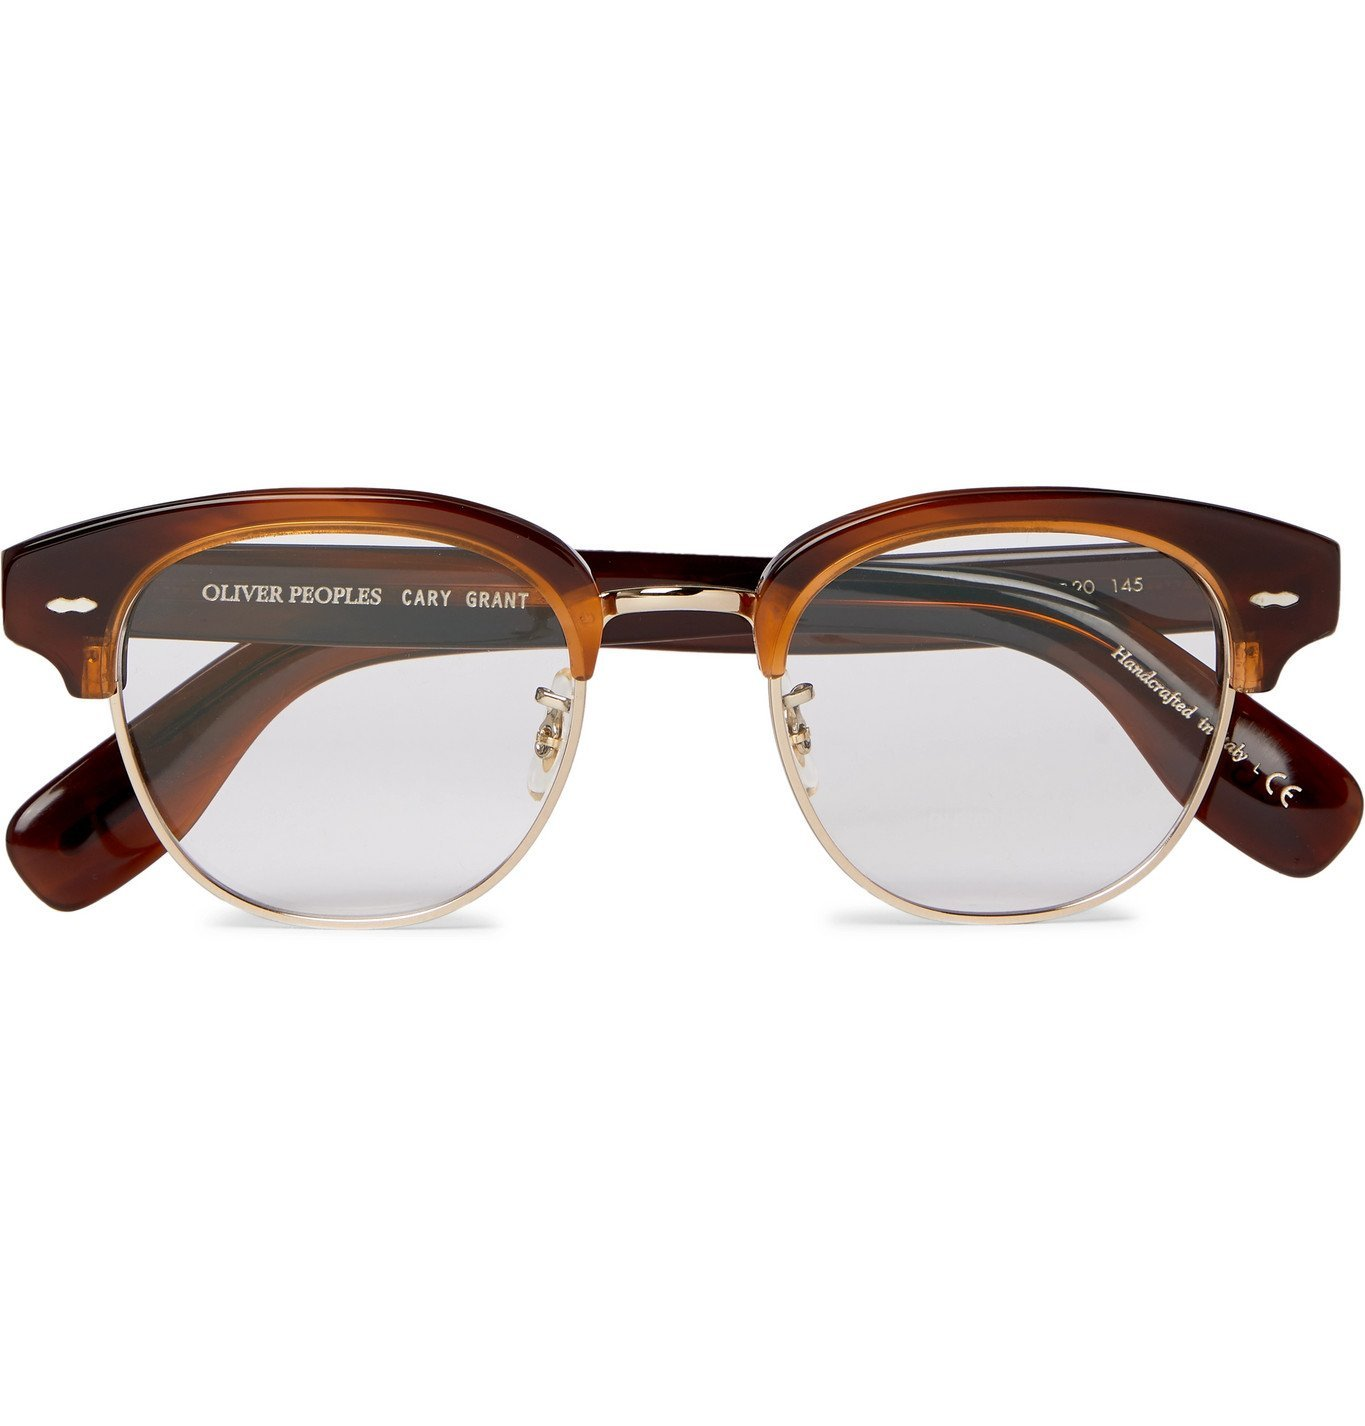 OLIVER PEOPLES - Cary Grant 2 Round-Frame Gold-Tone and Tortoiseshell Acetate Optical Glasses - Brown